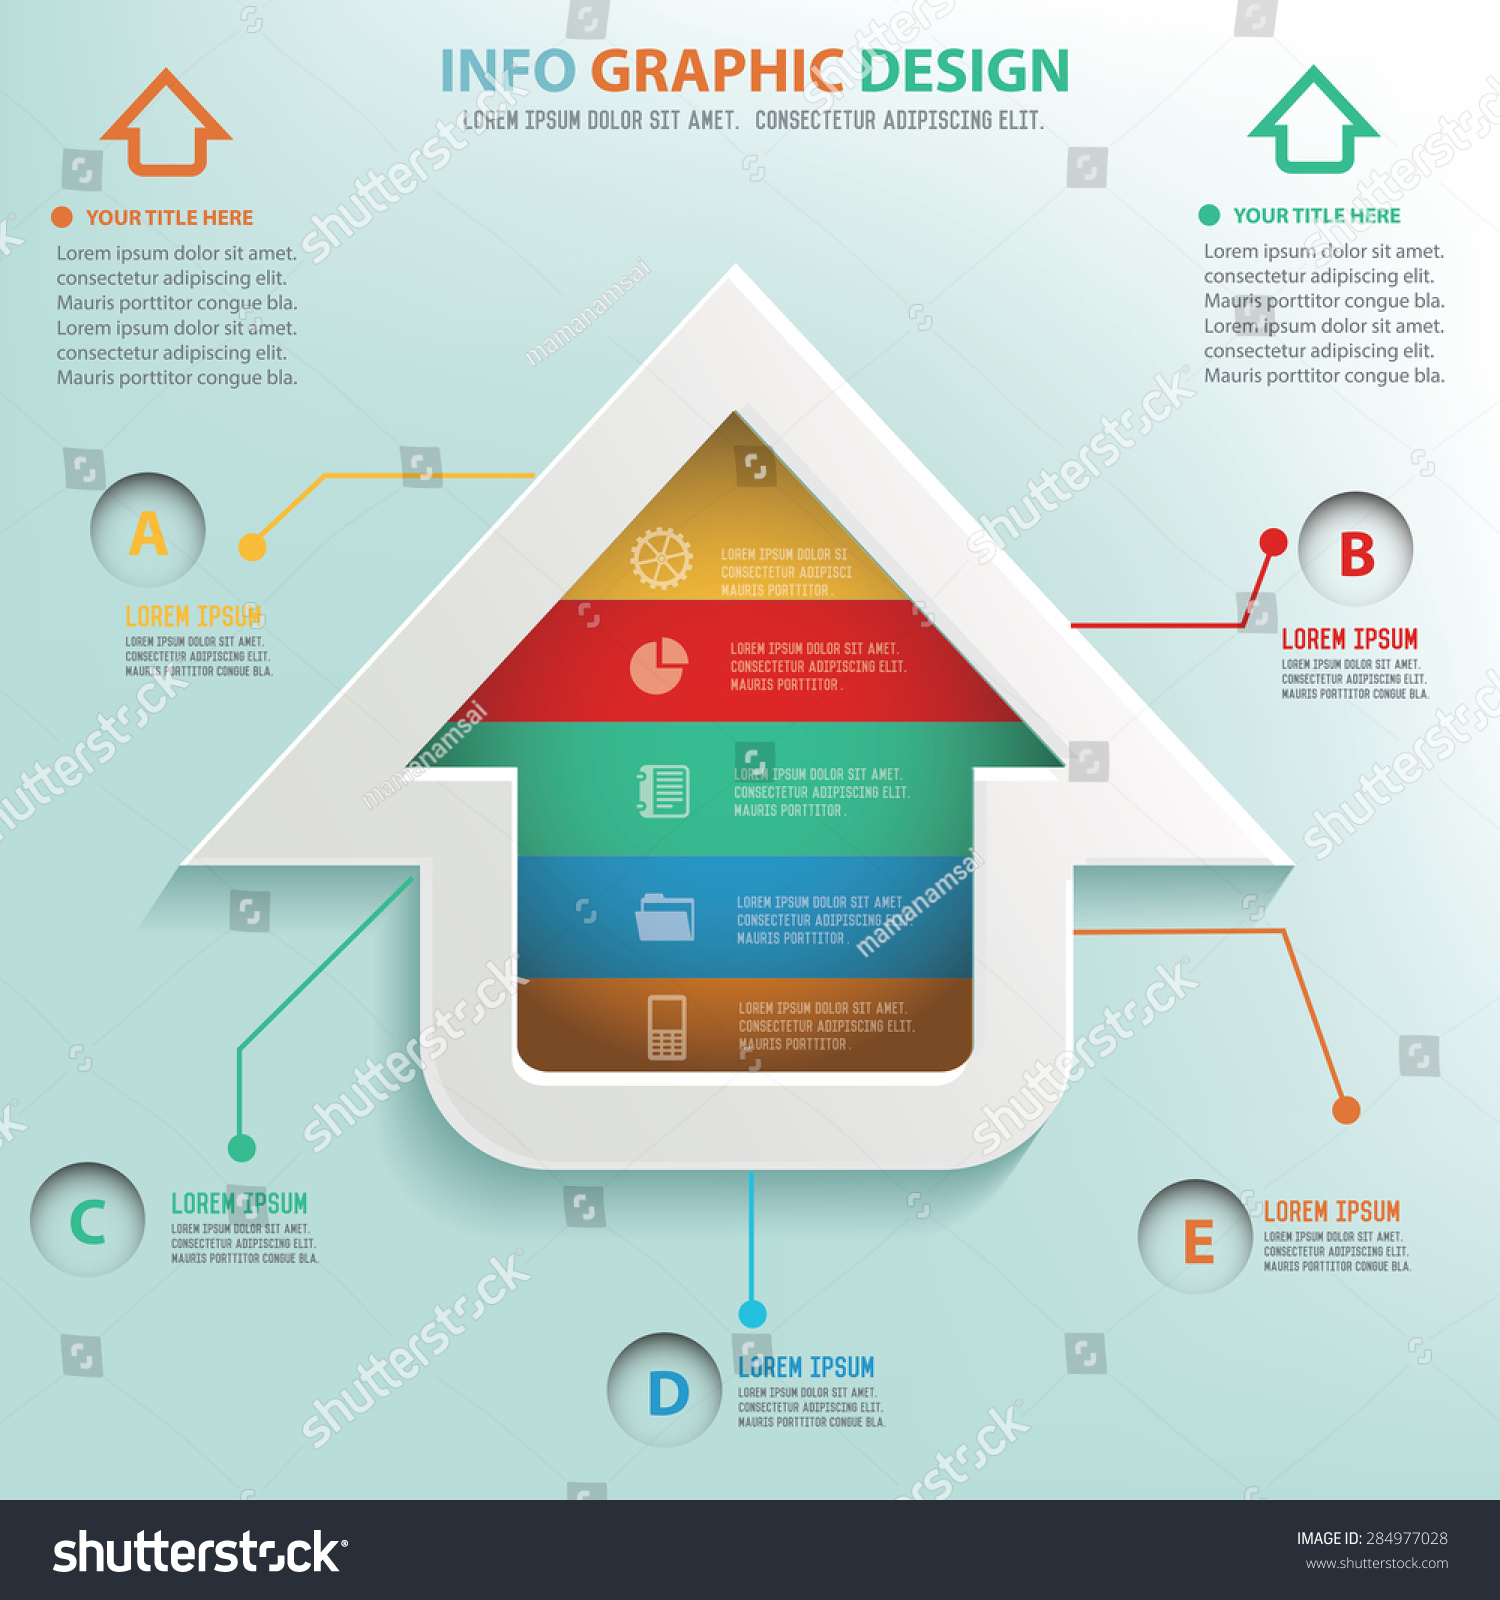 Home Info Graphic Design Business Concept Stock Vector